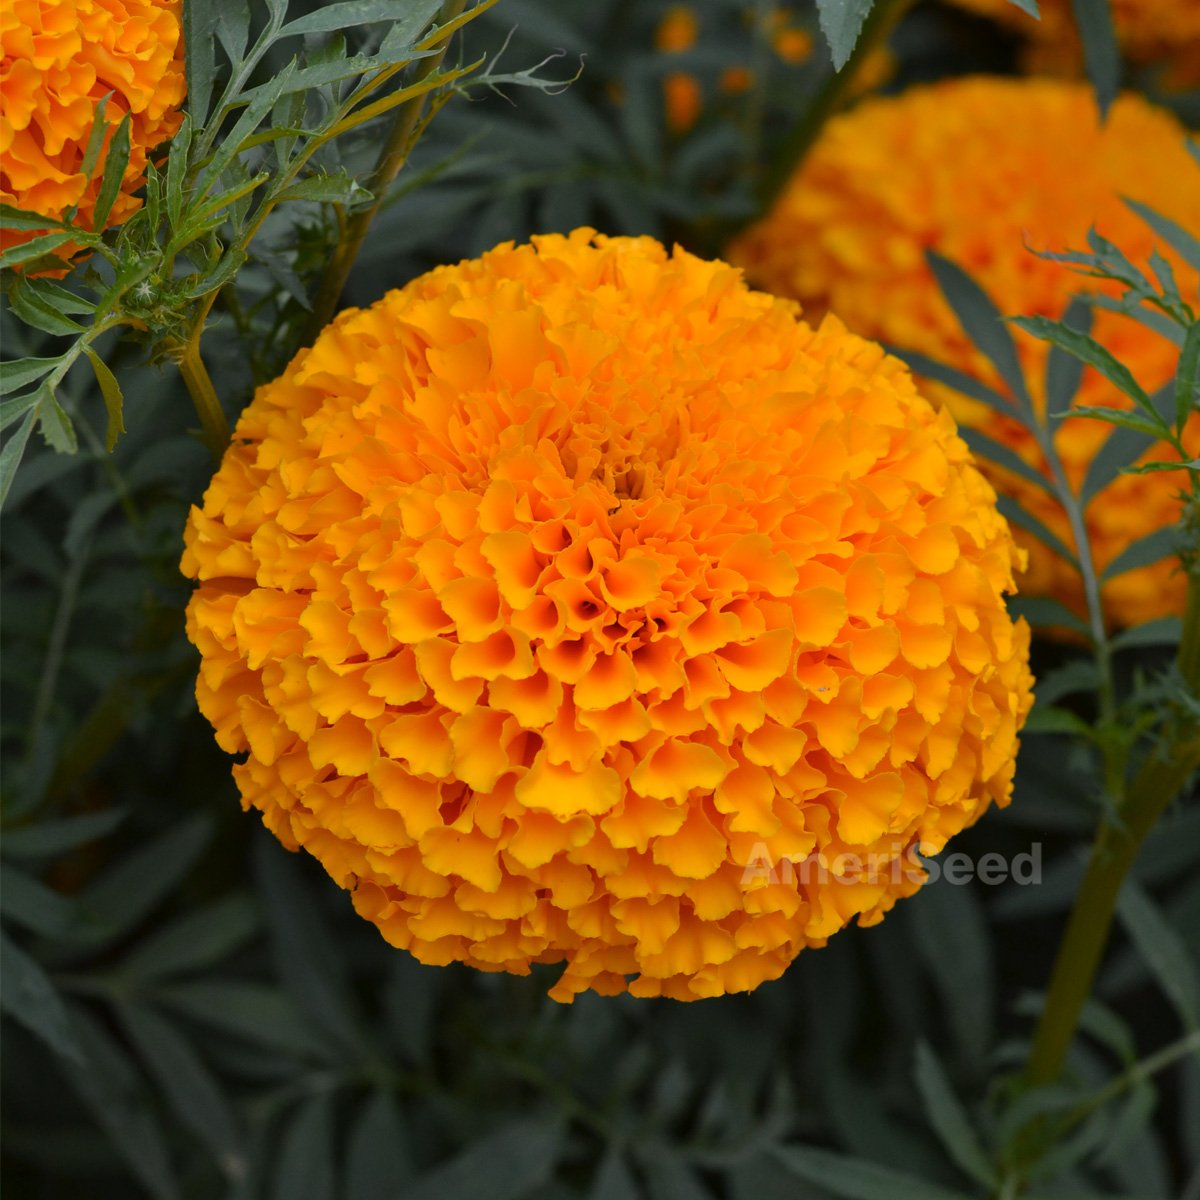 Marigold Giant Ducks F1 Orange